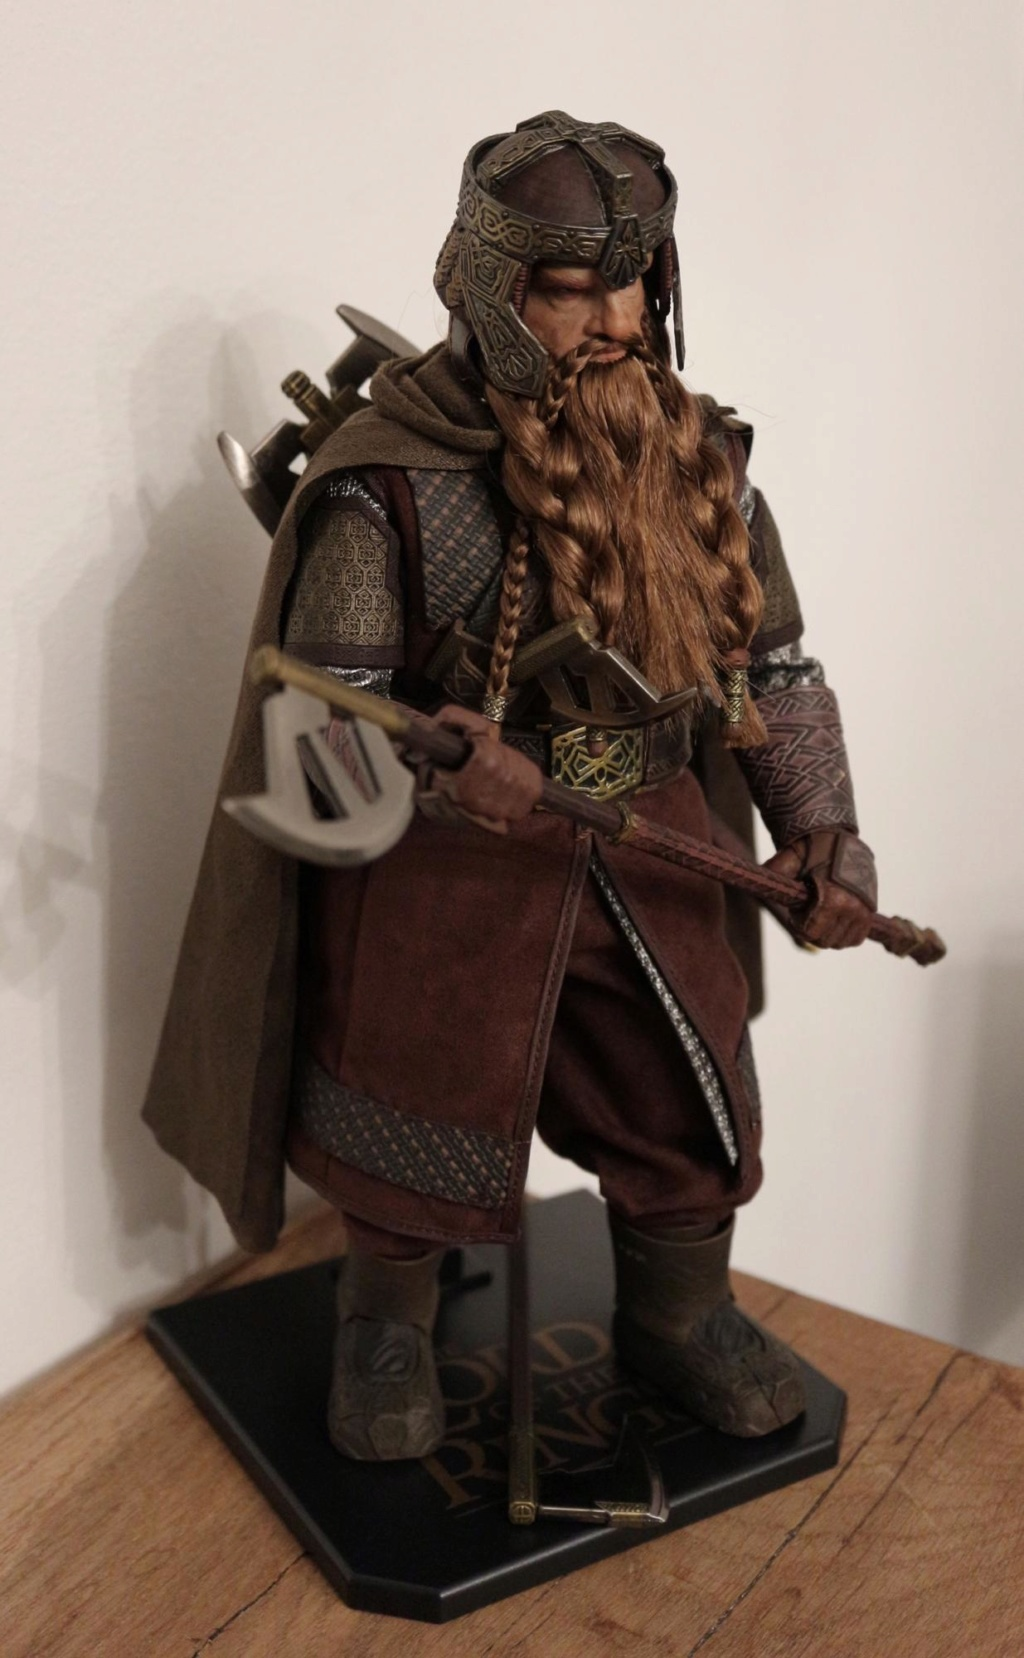 asmus - NEW PRODUCT: Asmus Toys The Lord of the Rings Series: Gimli (LOTR018) Timeme13